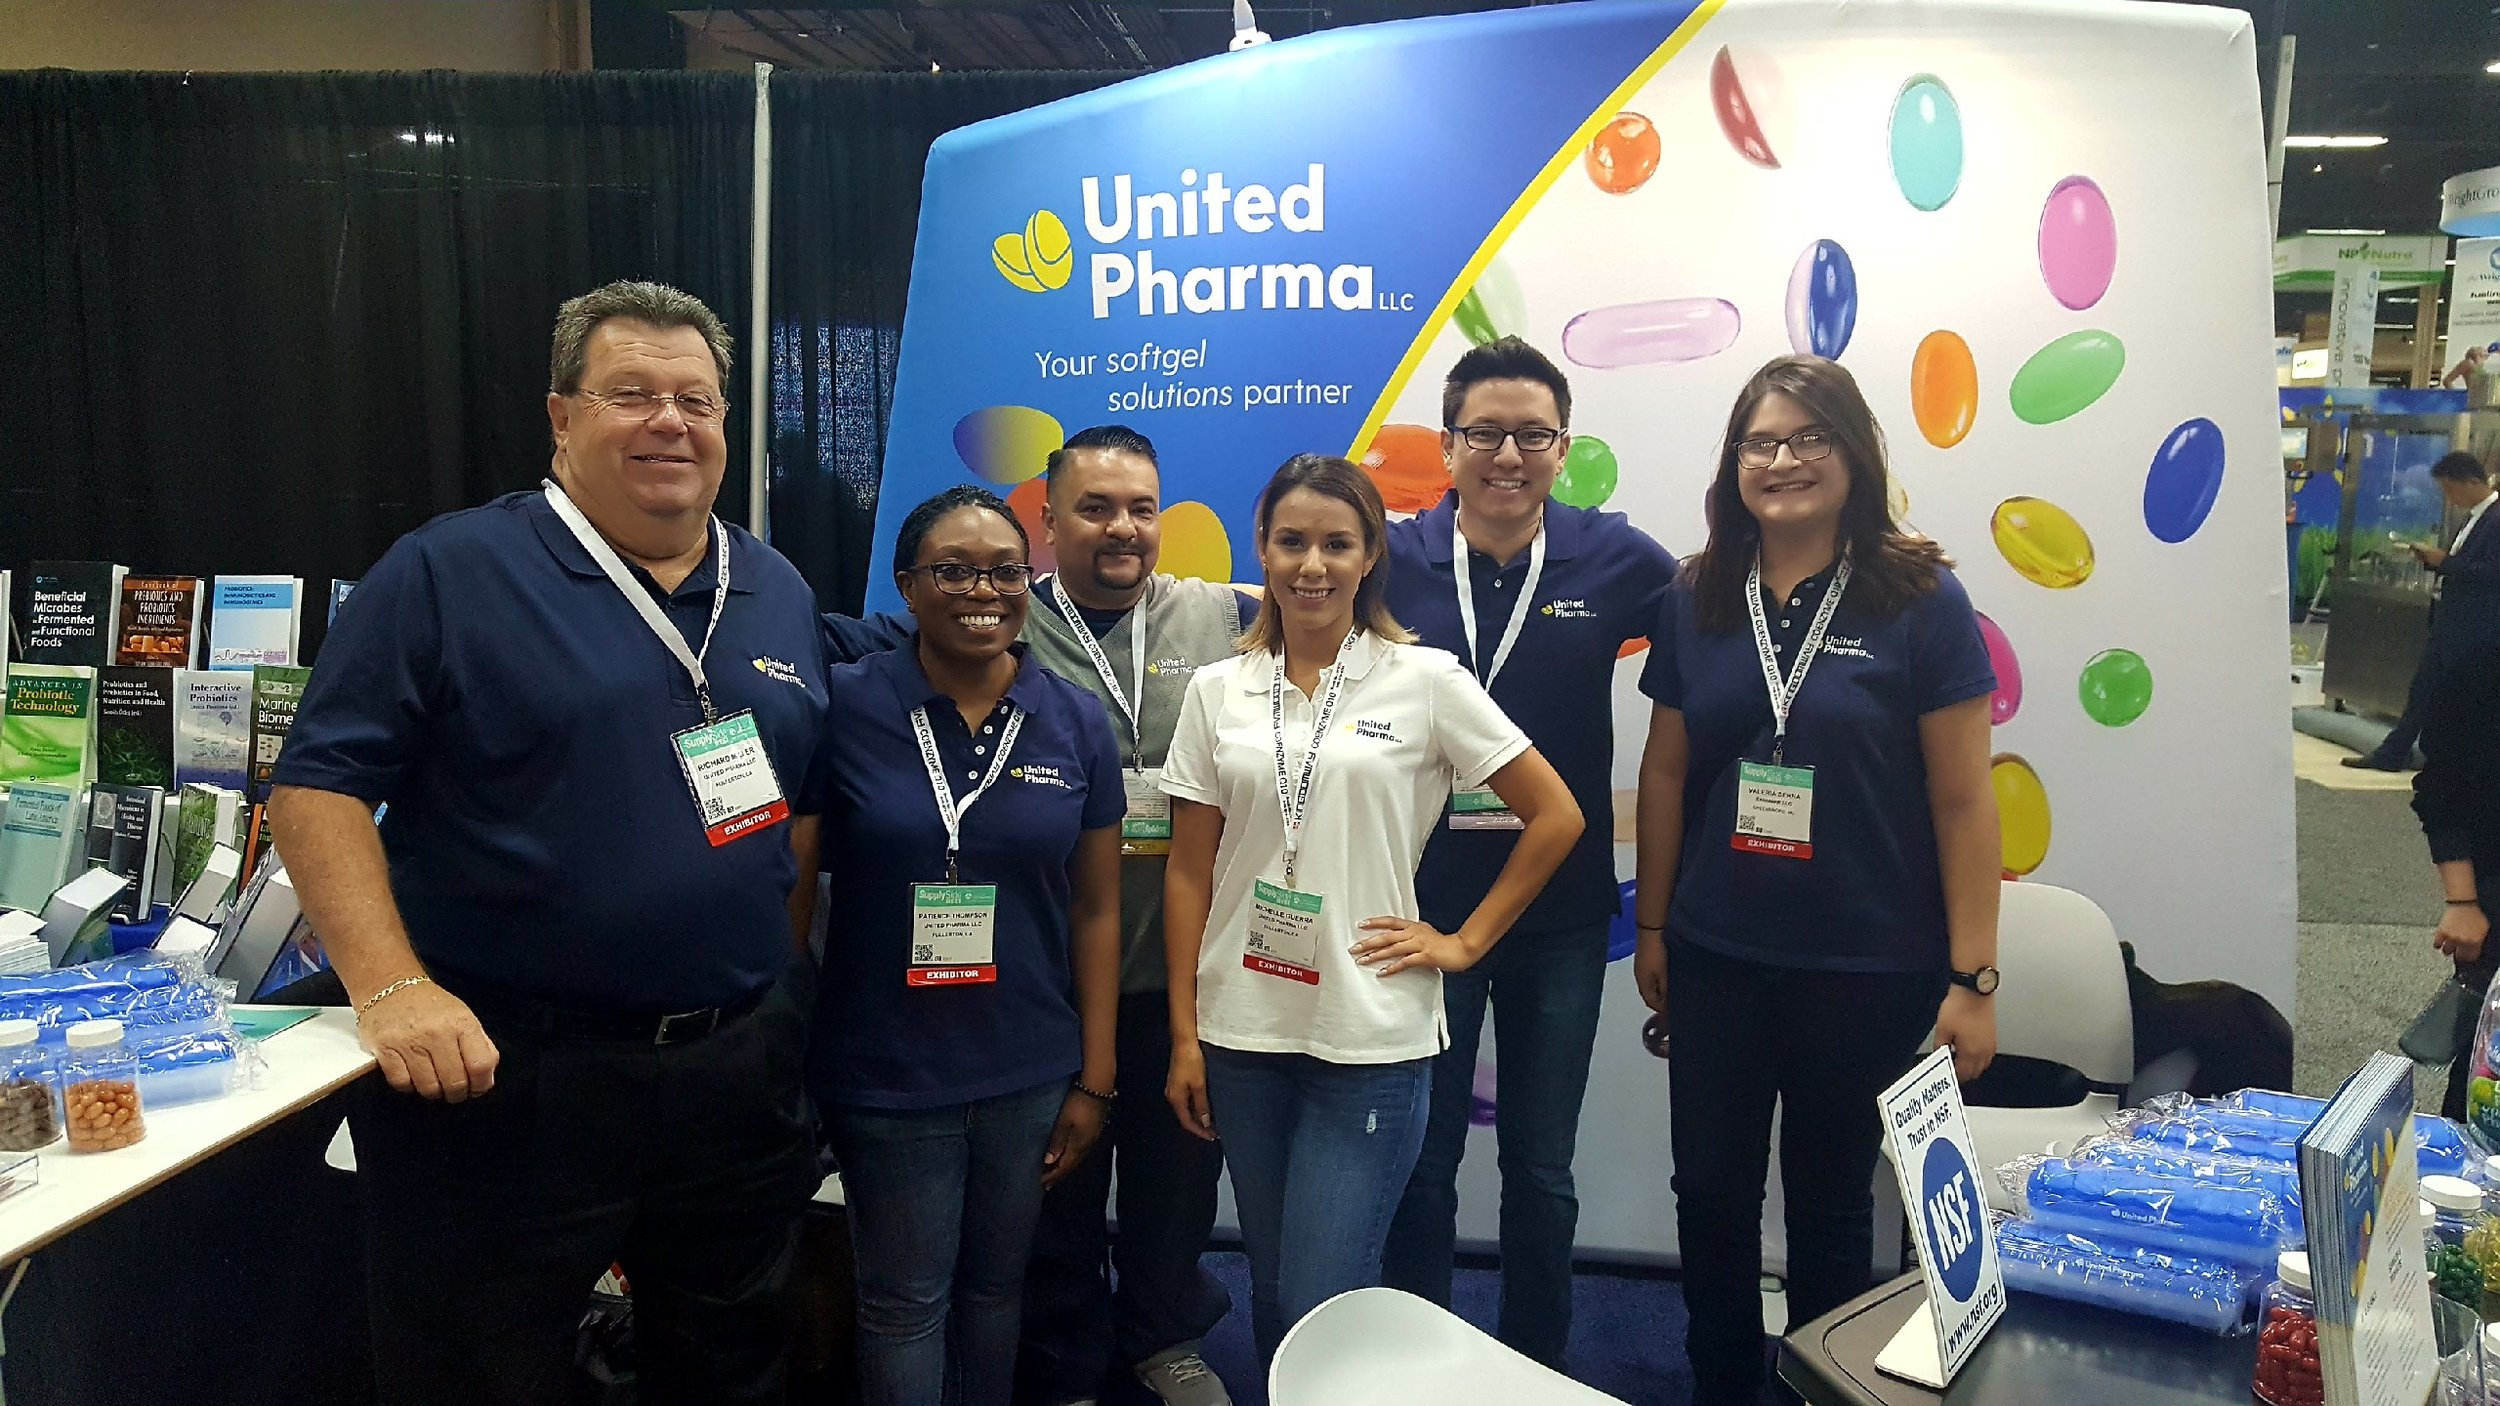 The UP crew at our booth JJ175.